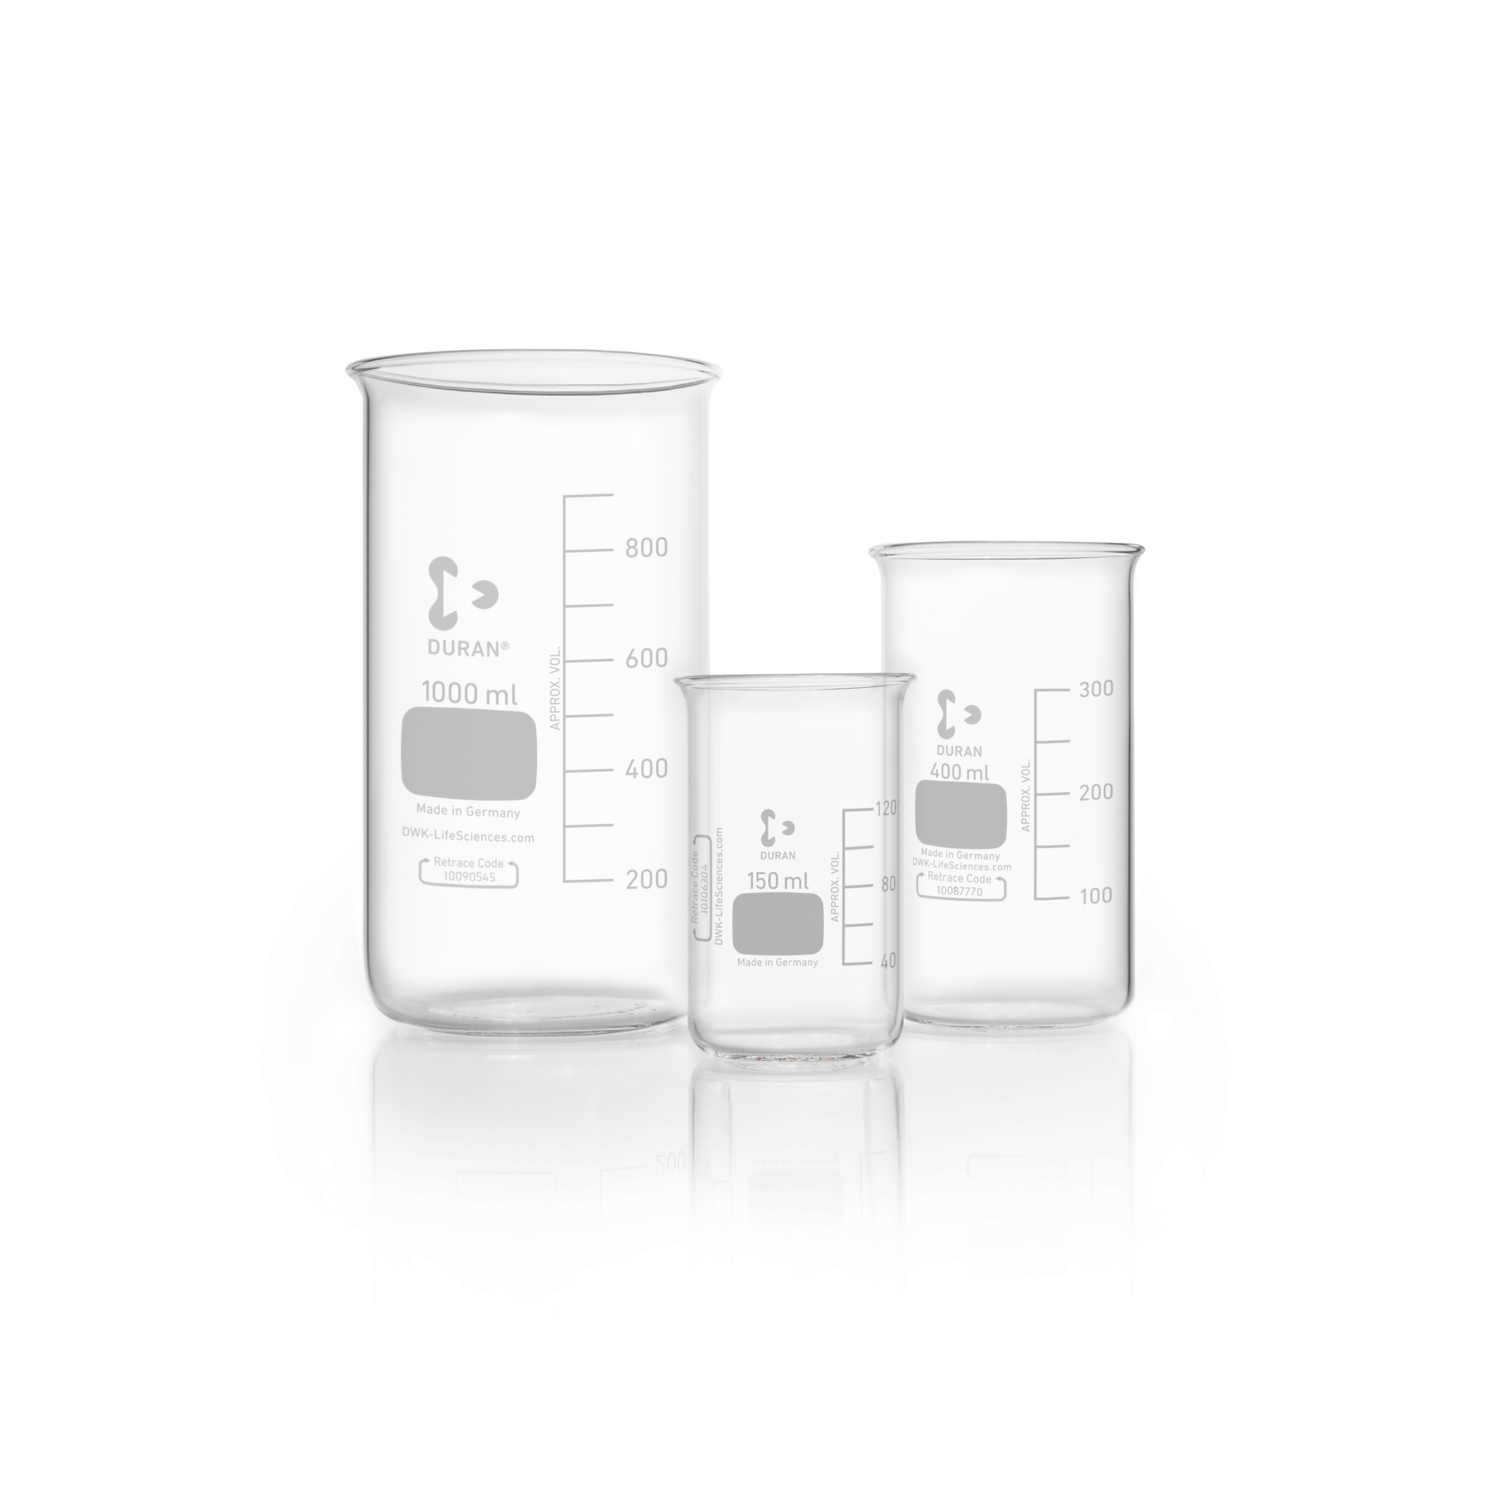 DURAN® Beaker, high form, without spout, 600 mL